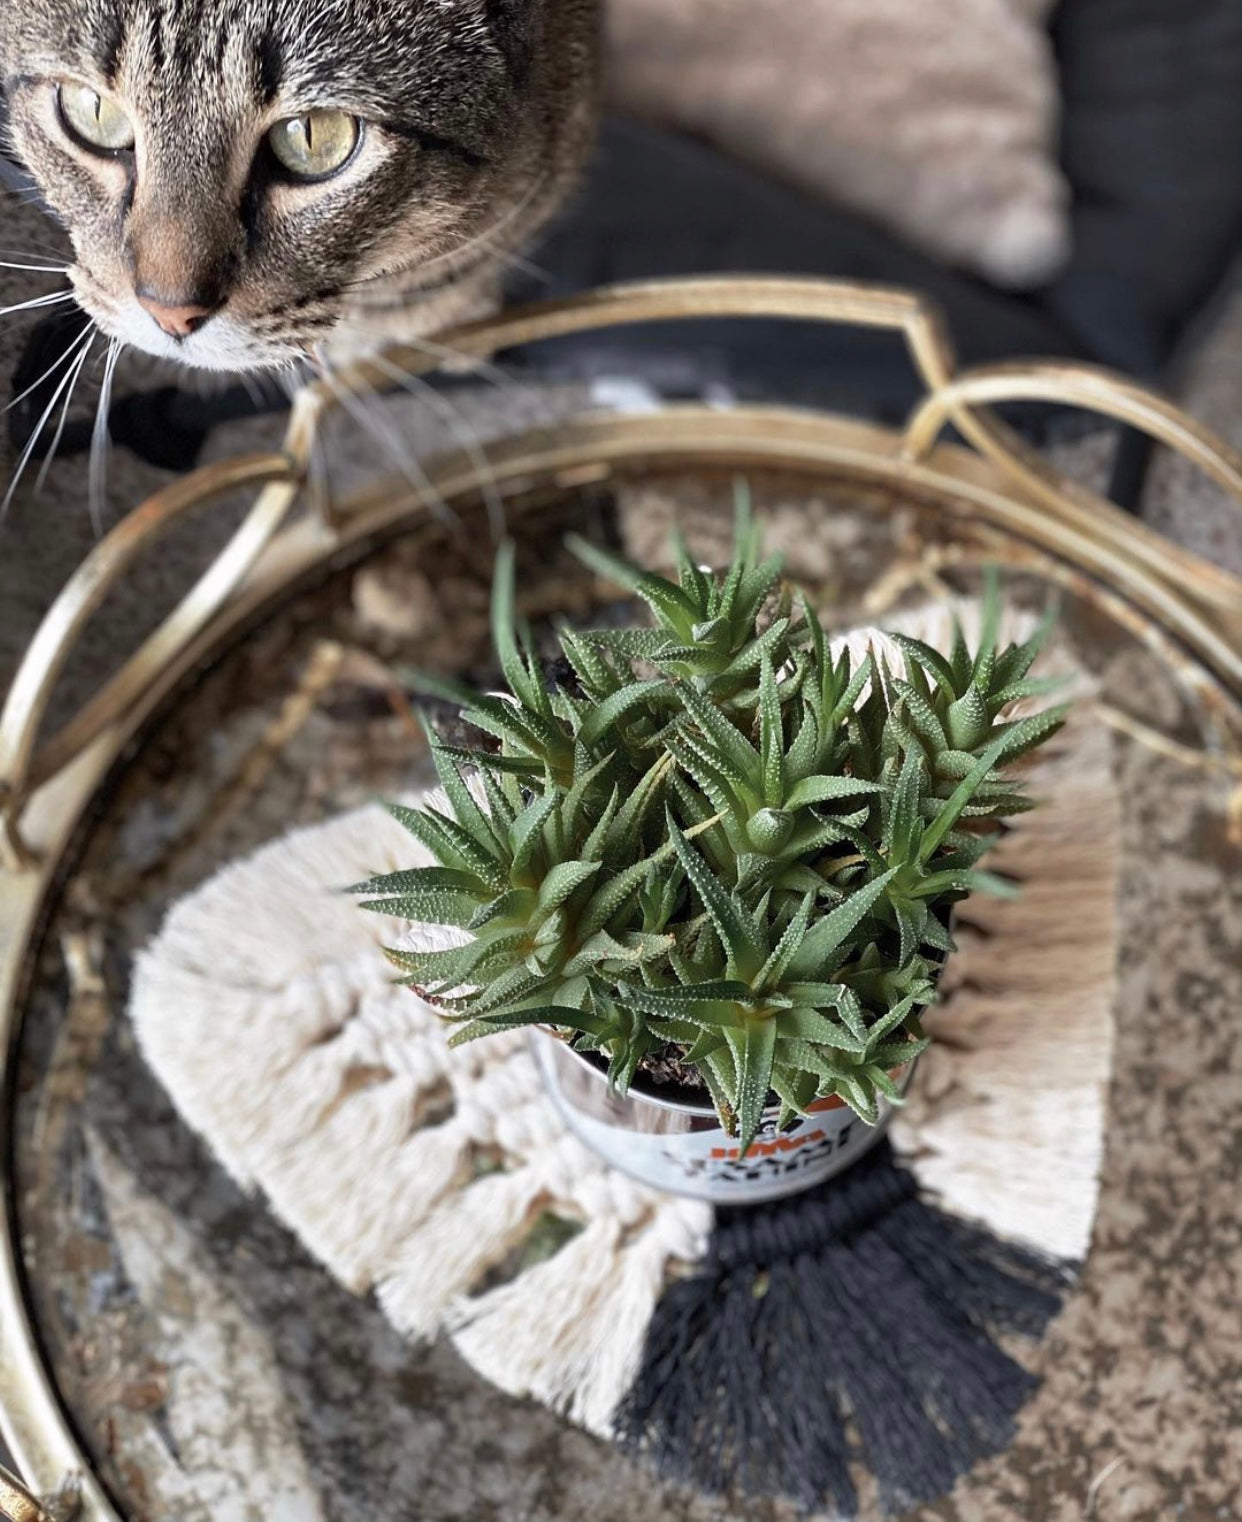 Bob the Cat with a macramé coaster and plant